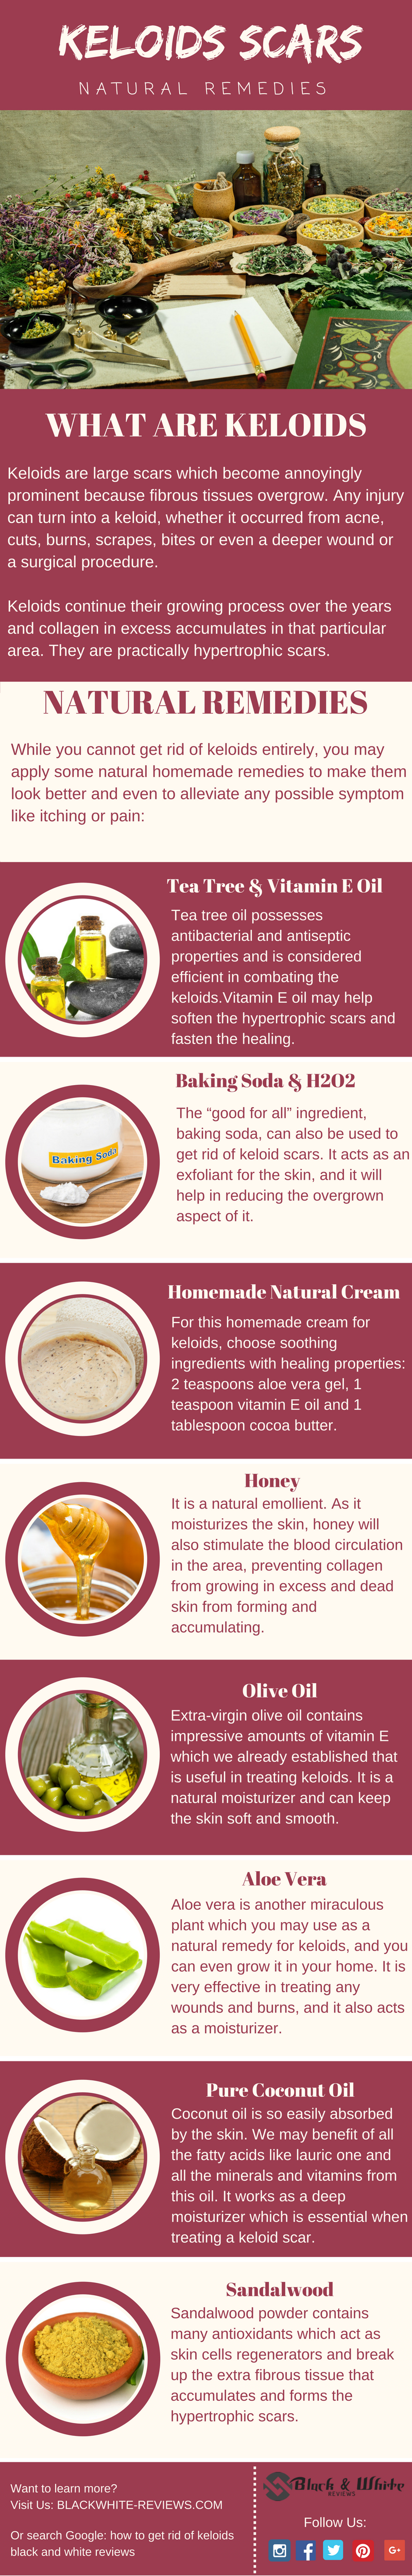 how to get rid of keloids scars infographic